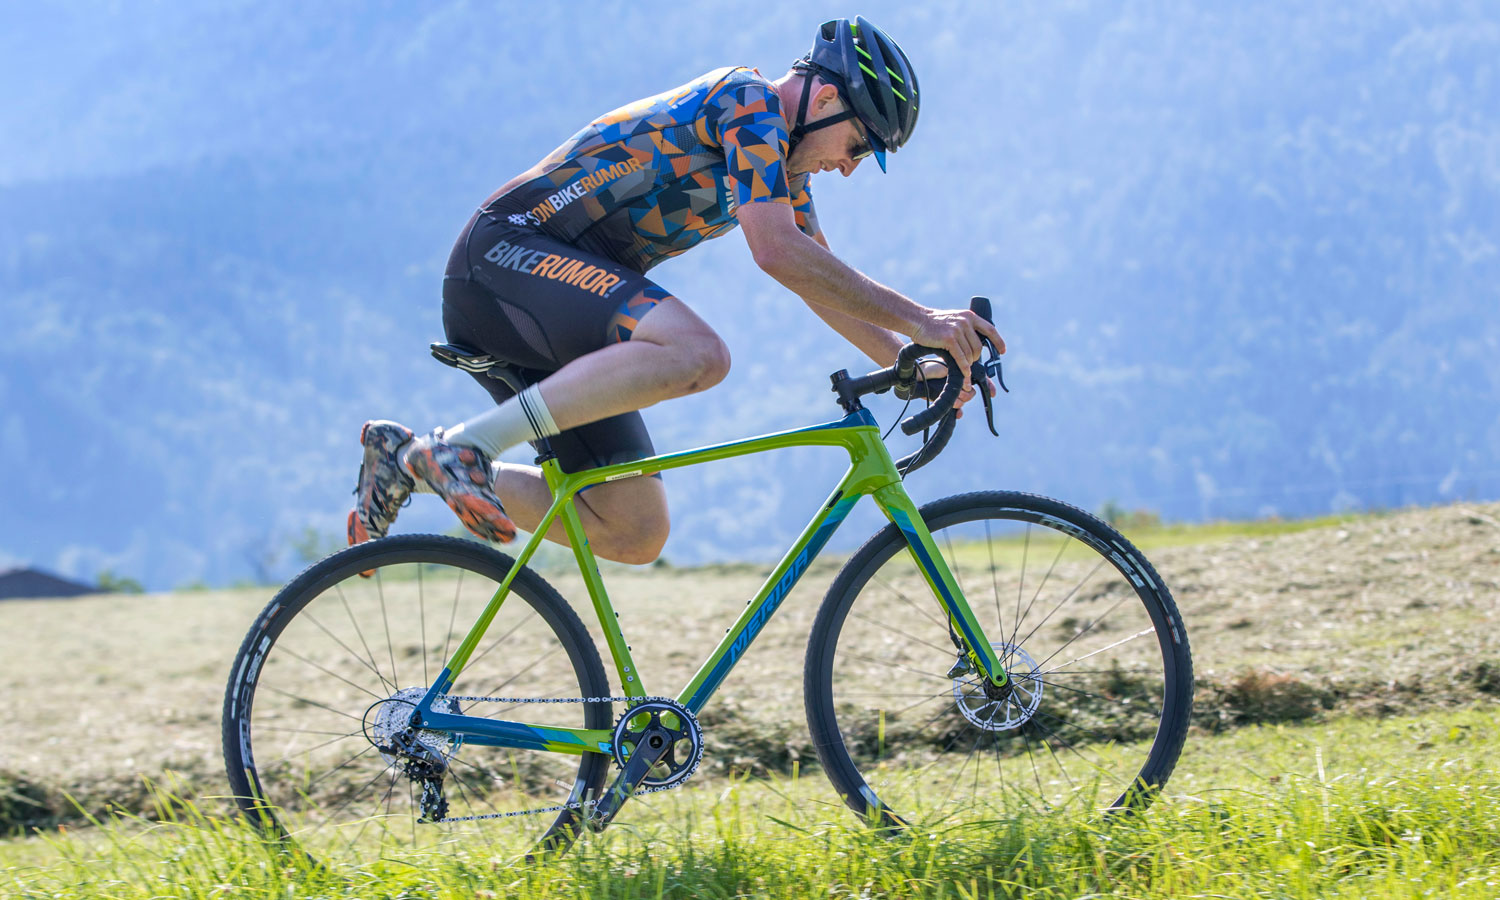 2019Merida Mission CX 800 carbon cyclocross race bike, photo by Paul Box of framedogs.com